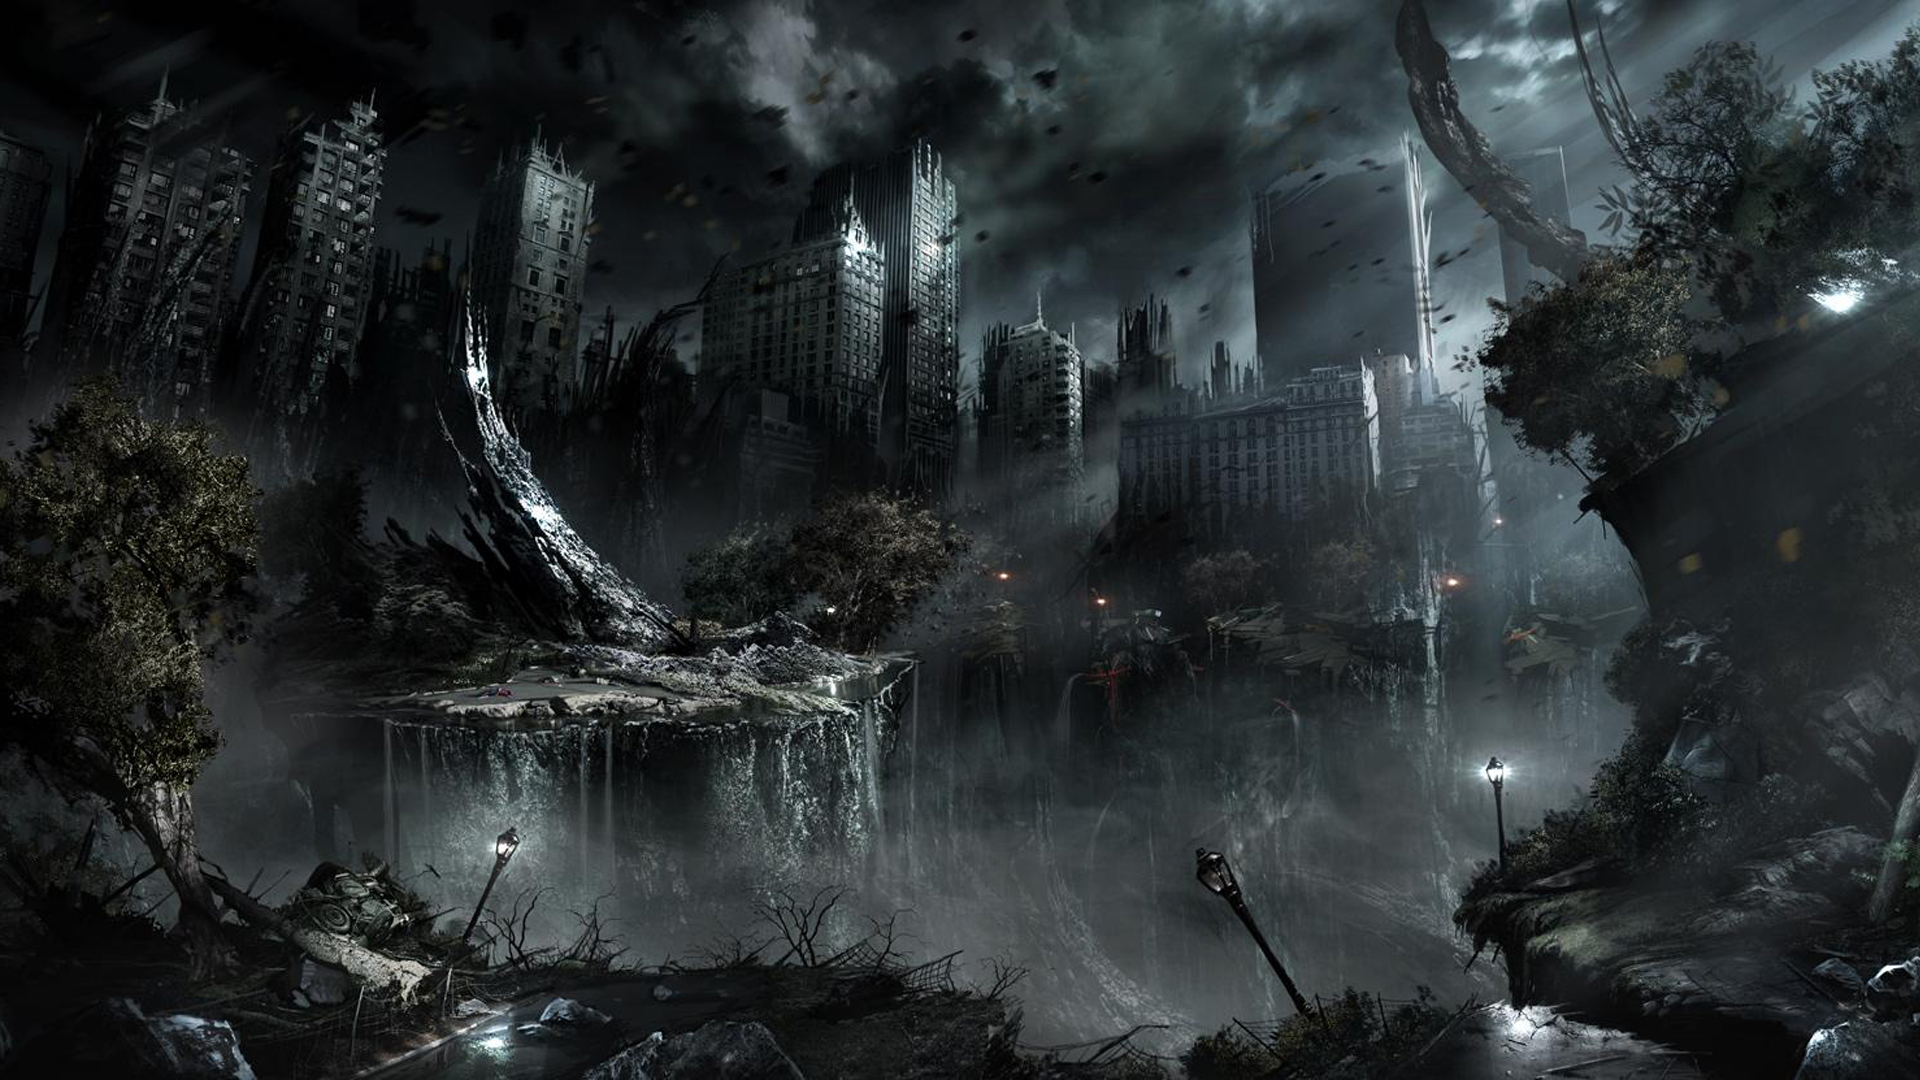 apocalyptic hd wallpaper 2560x1440 - photo #3